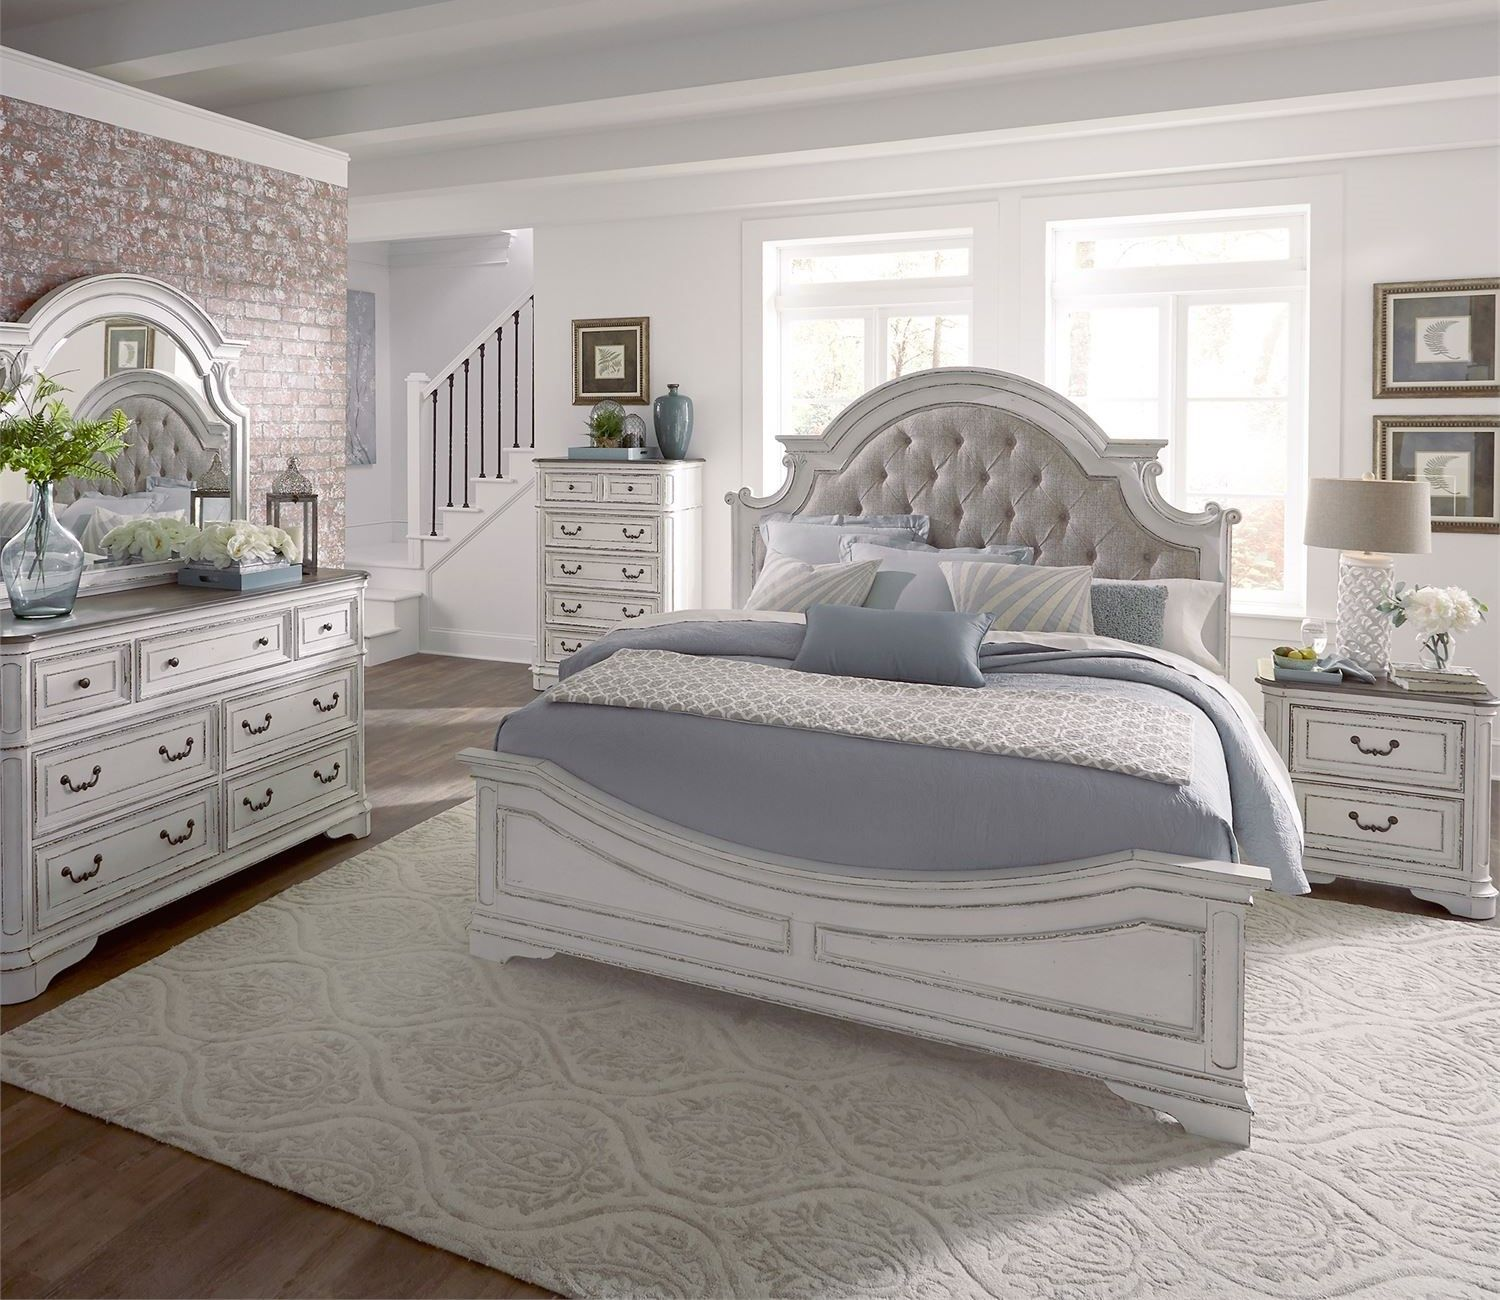 Magnolia Queen Panel Bedroom Set W Tufted Beige Linen